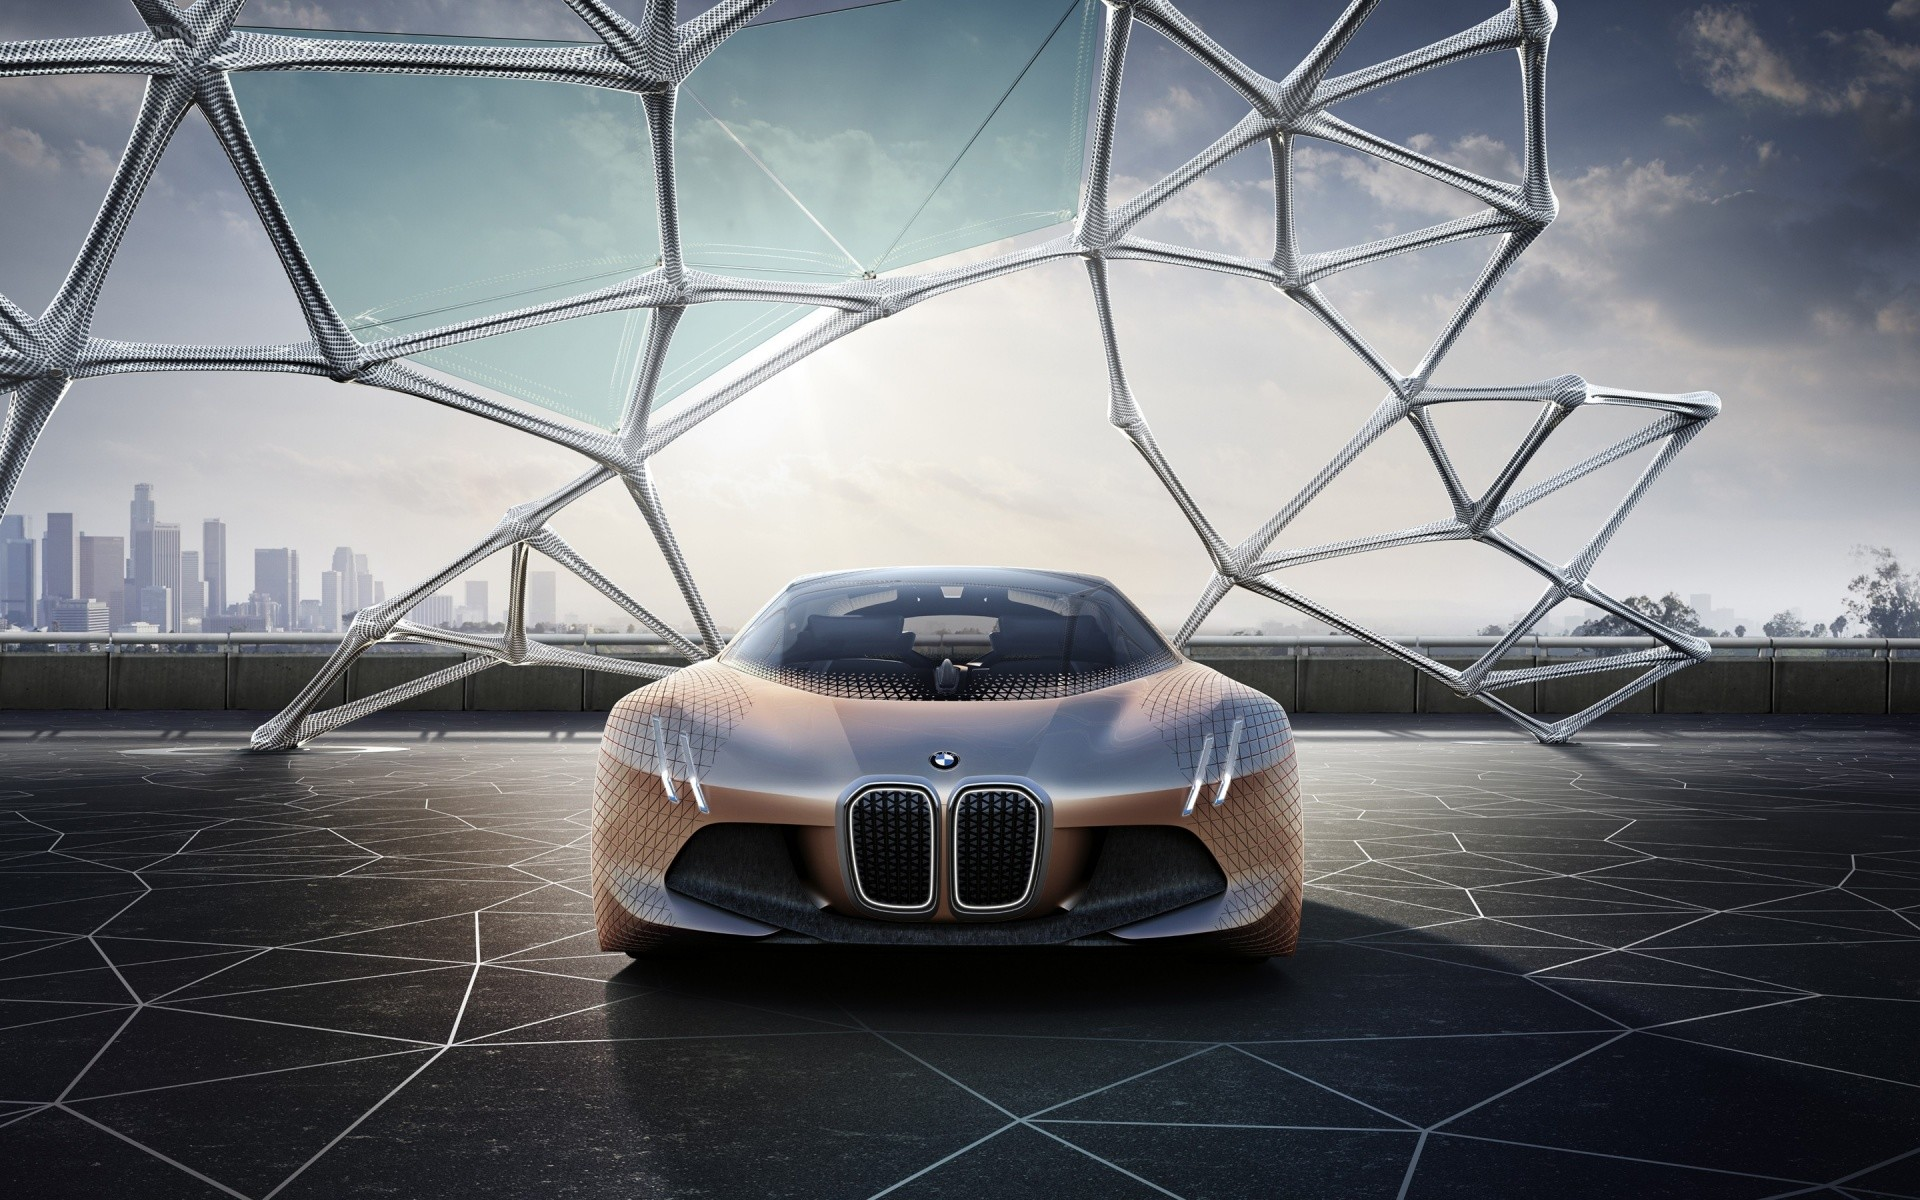 Free BMW Vision Next 100 Concept phone wallpaper by asimm09